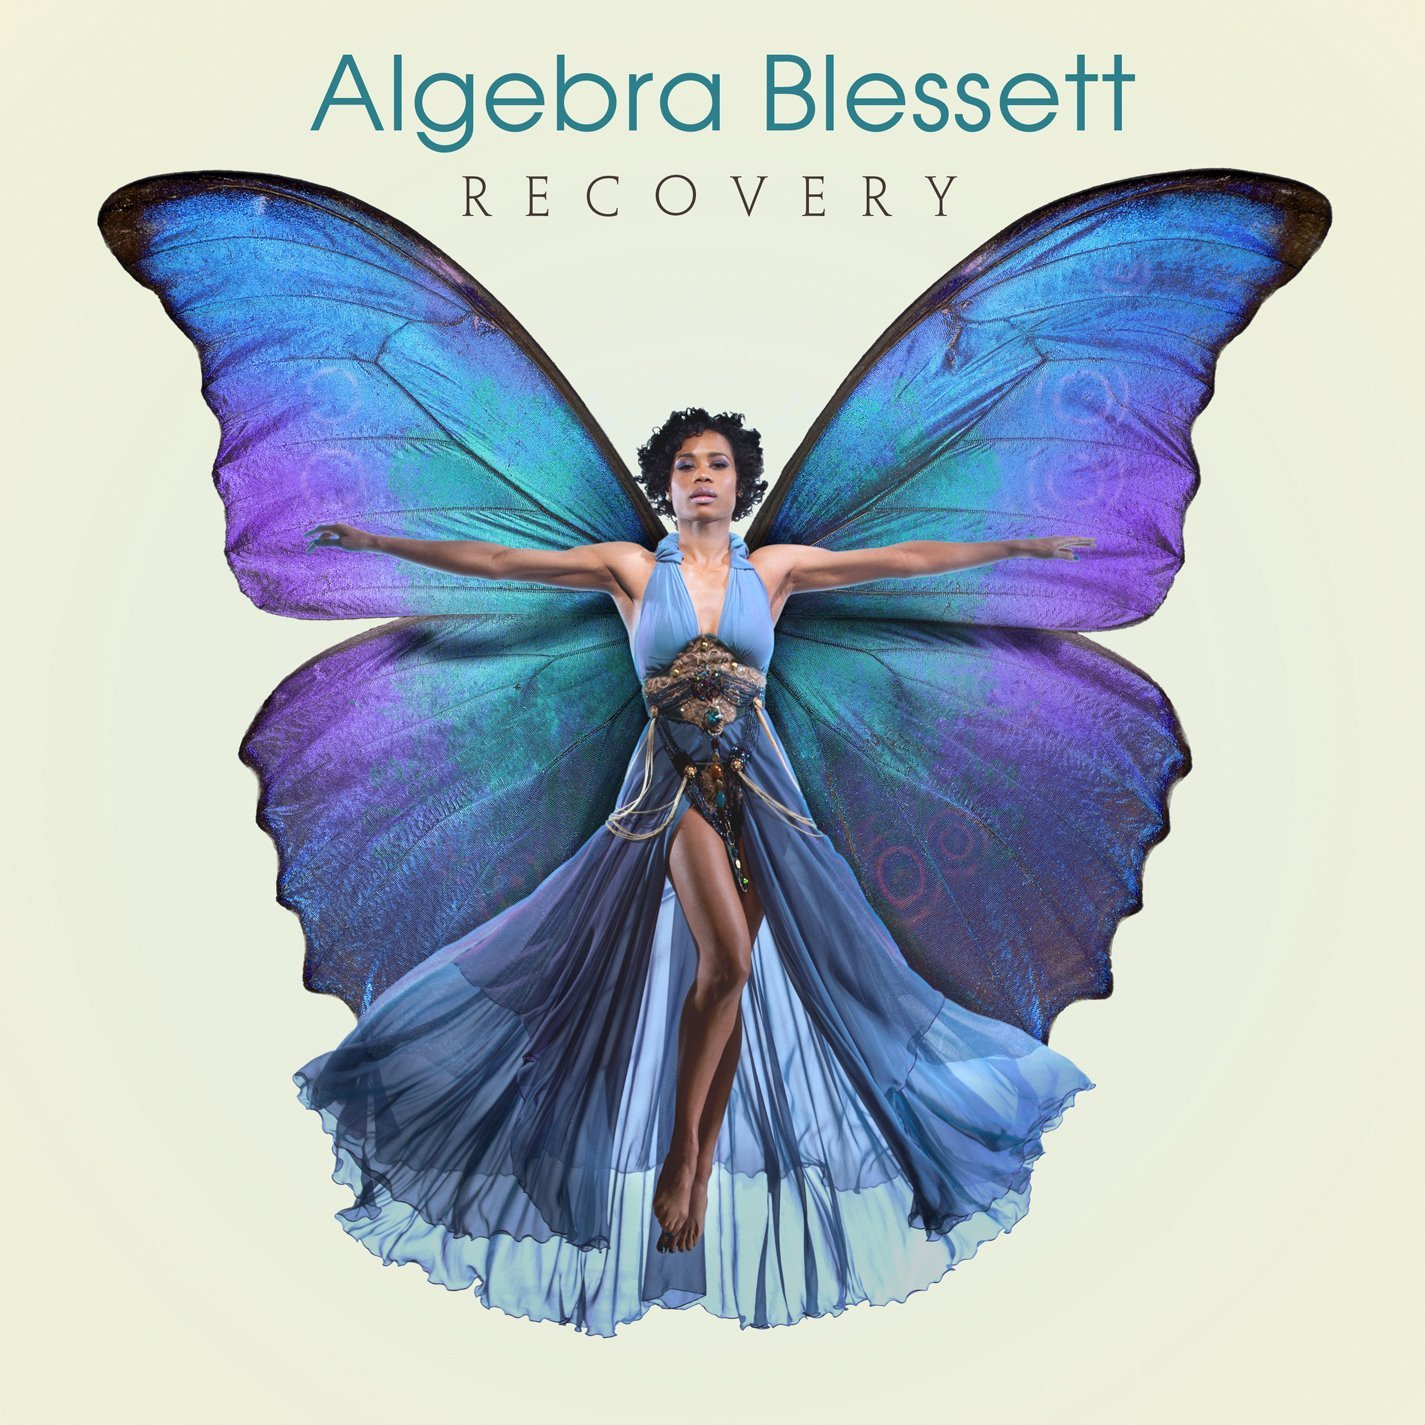 Algebra Blessett, Recovery | Album Review